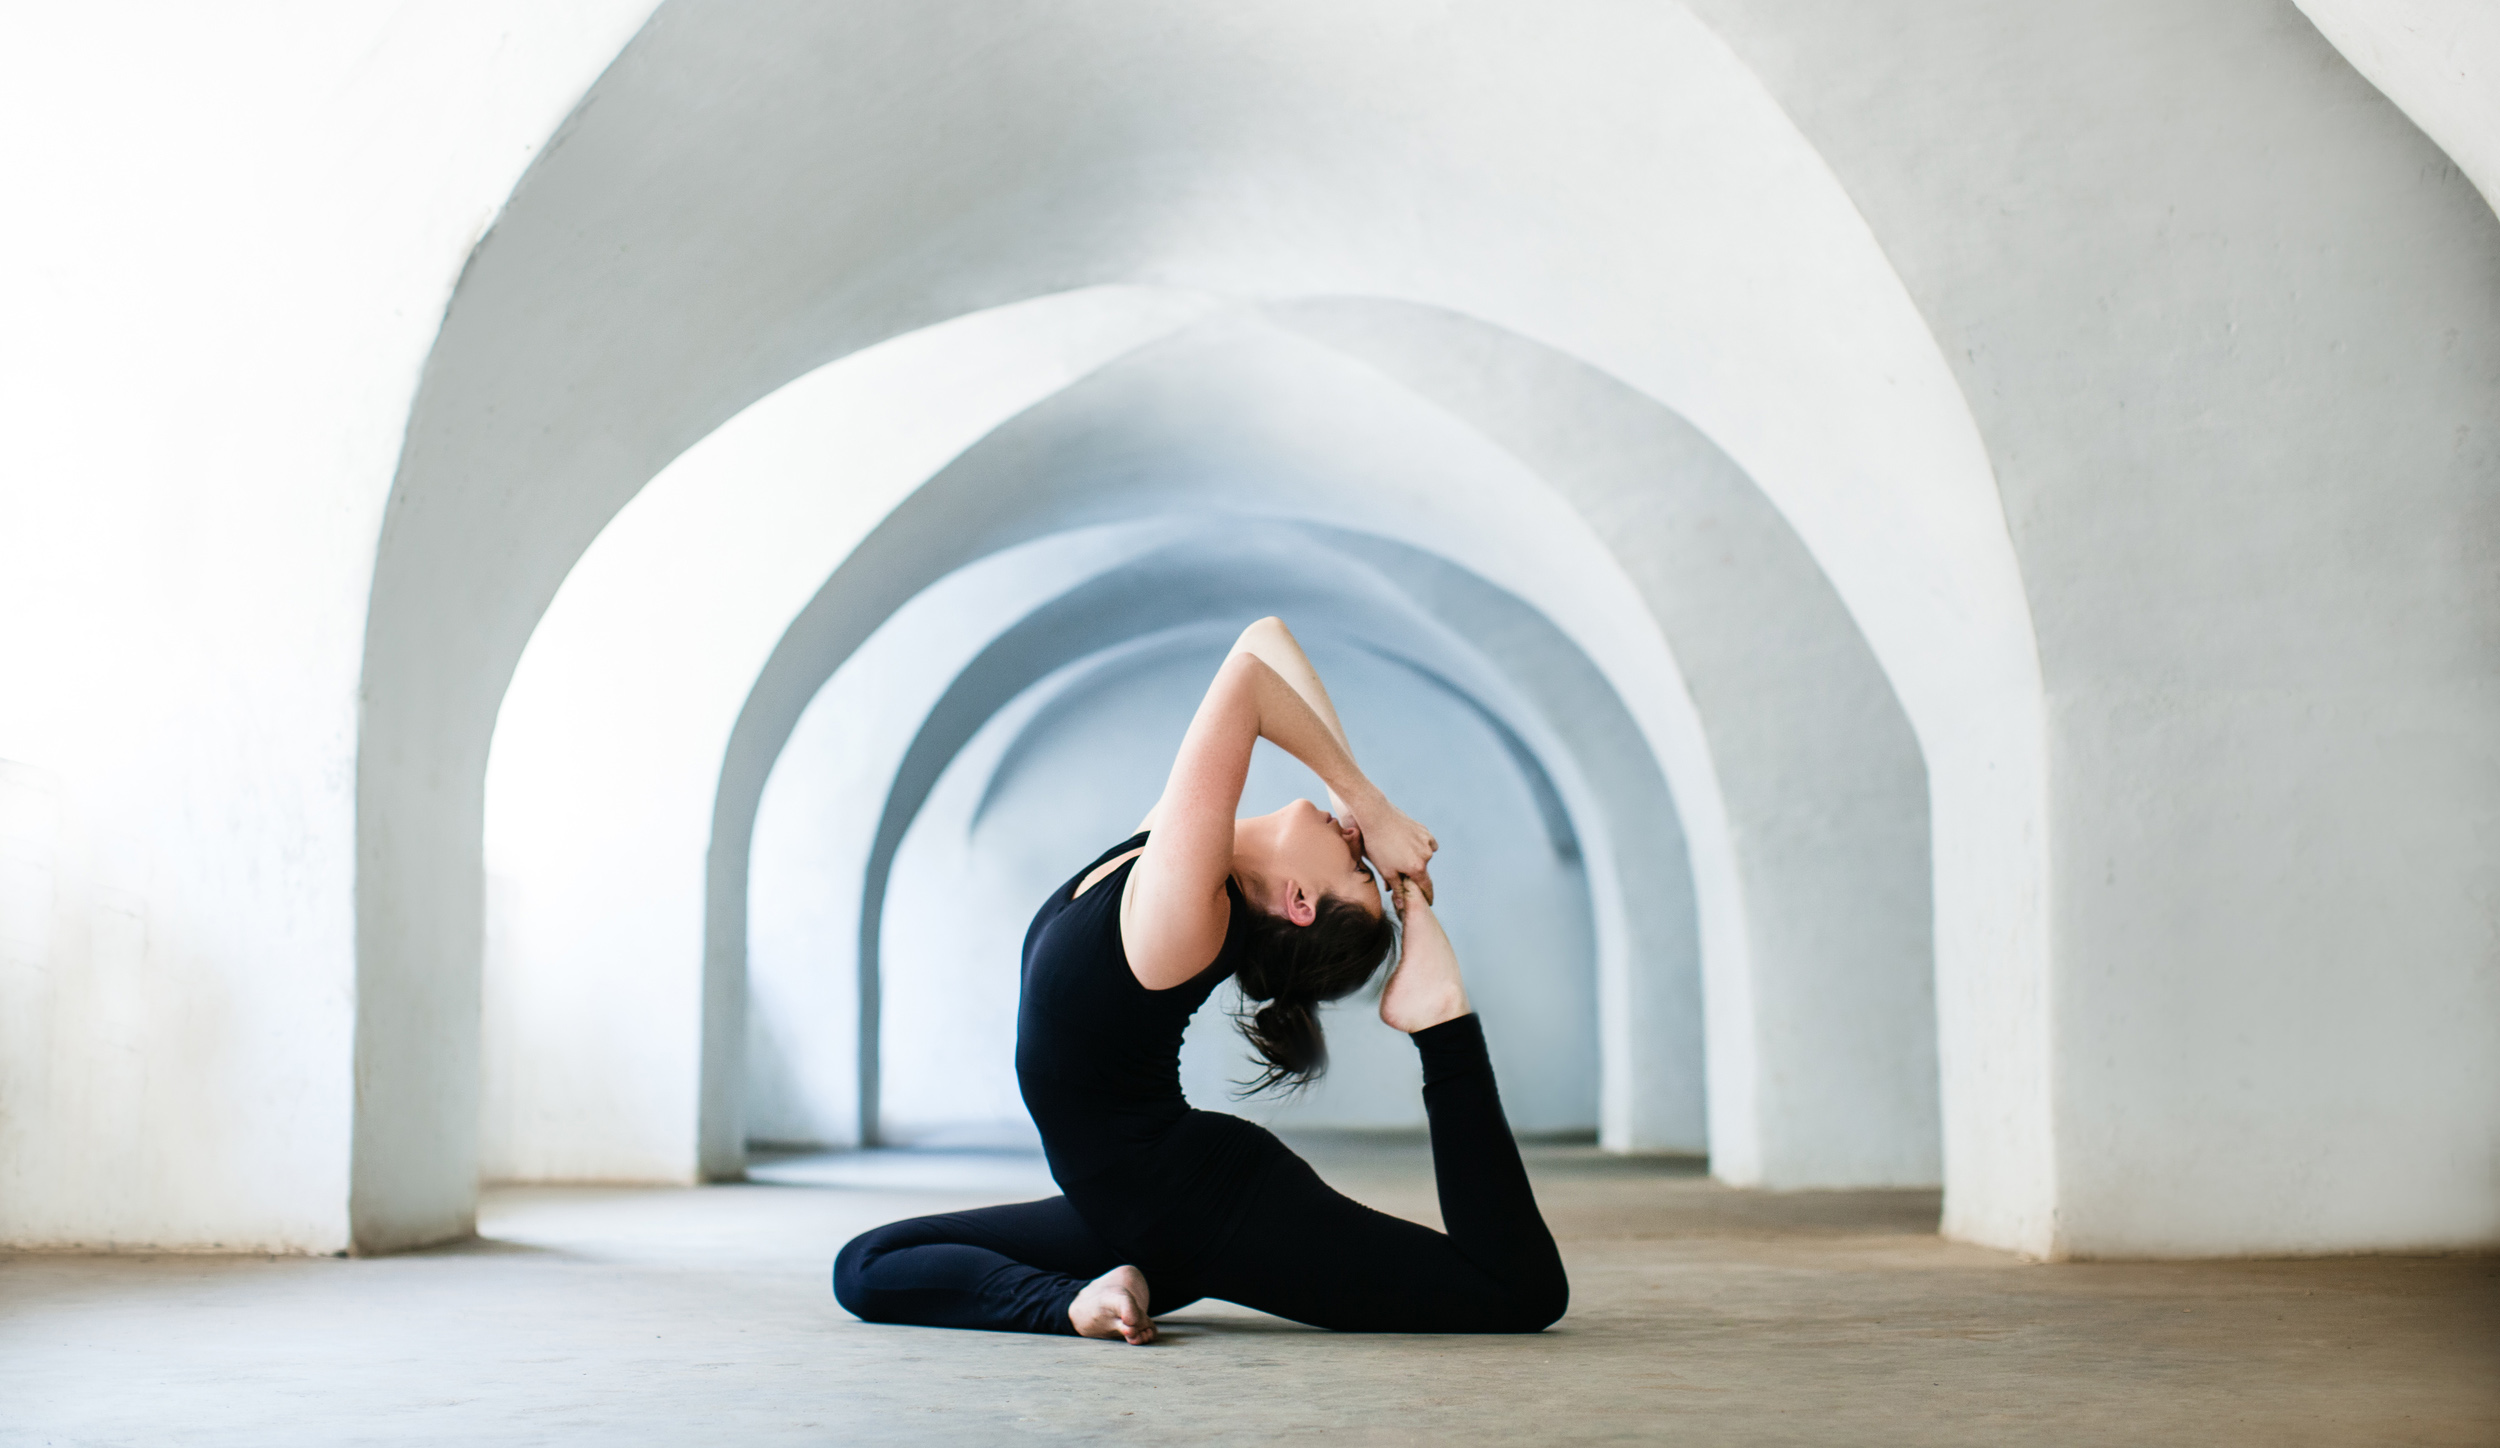 Melbourne's First Yoga Studio with 100% Donation-Based Classes - ~ Pay as you feel ~